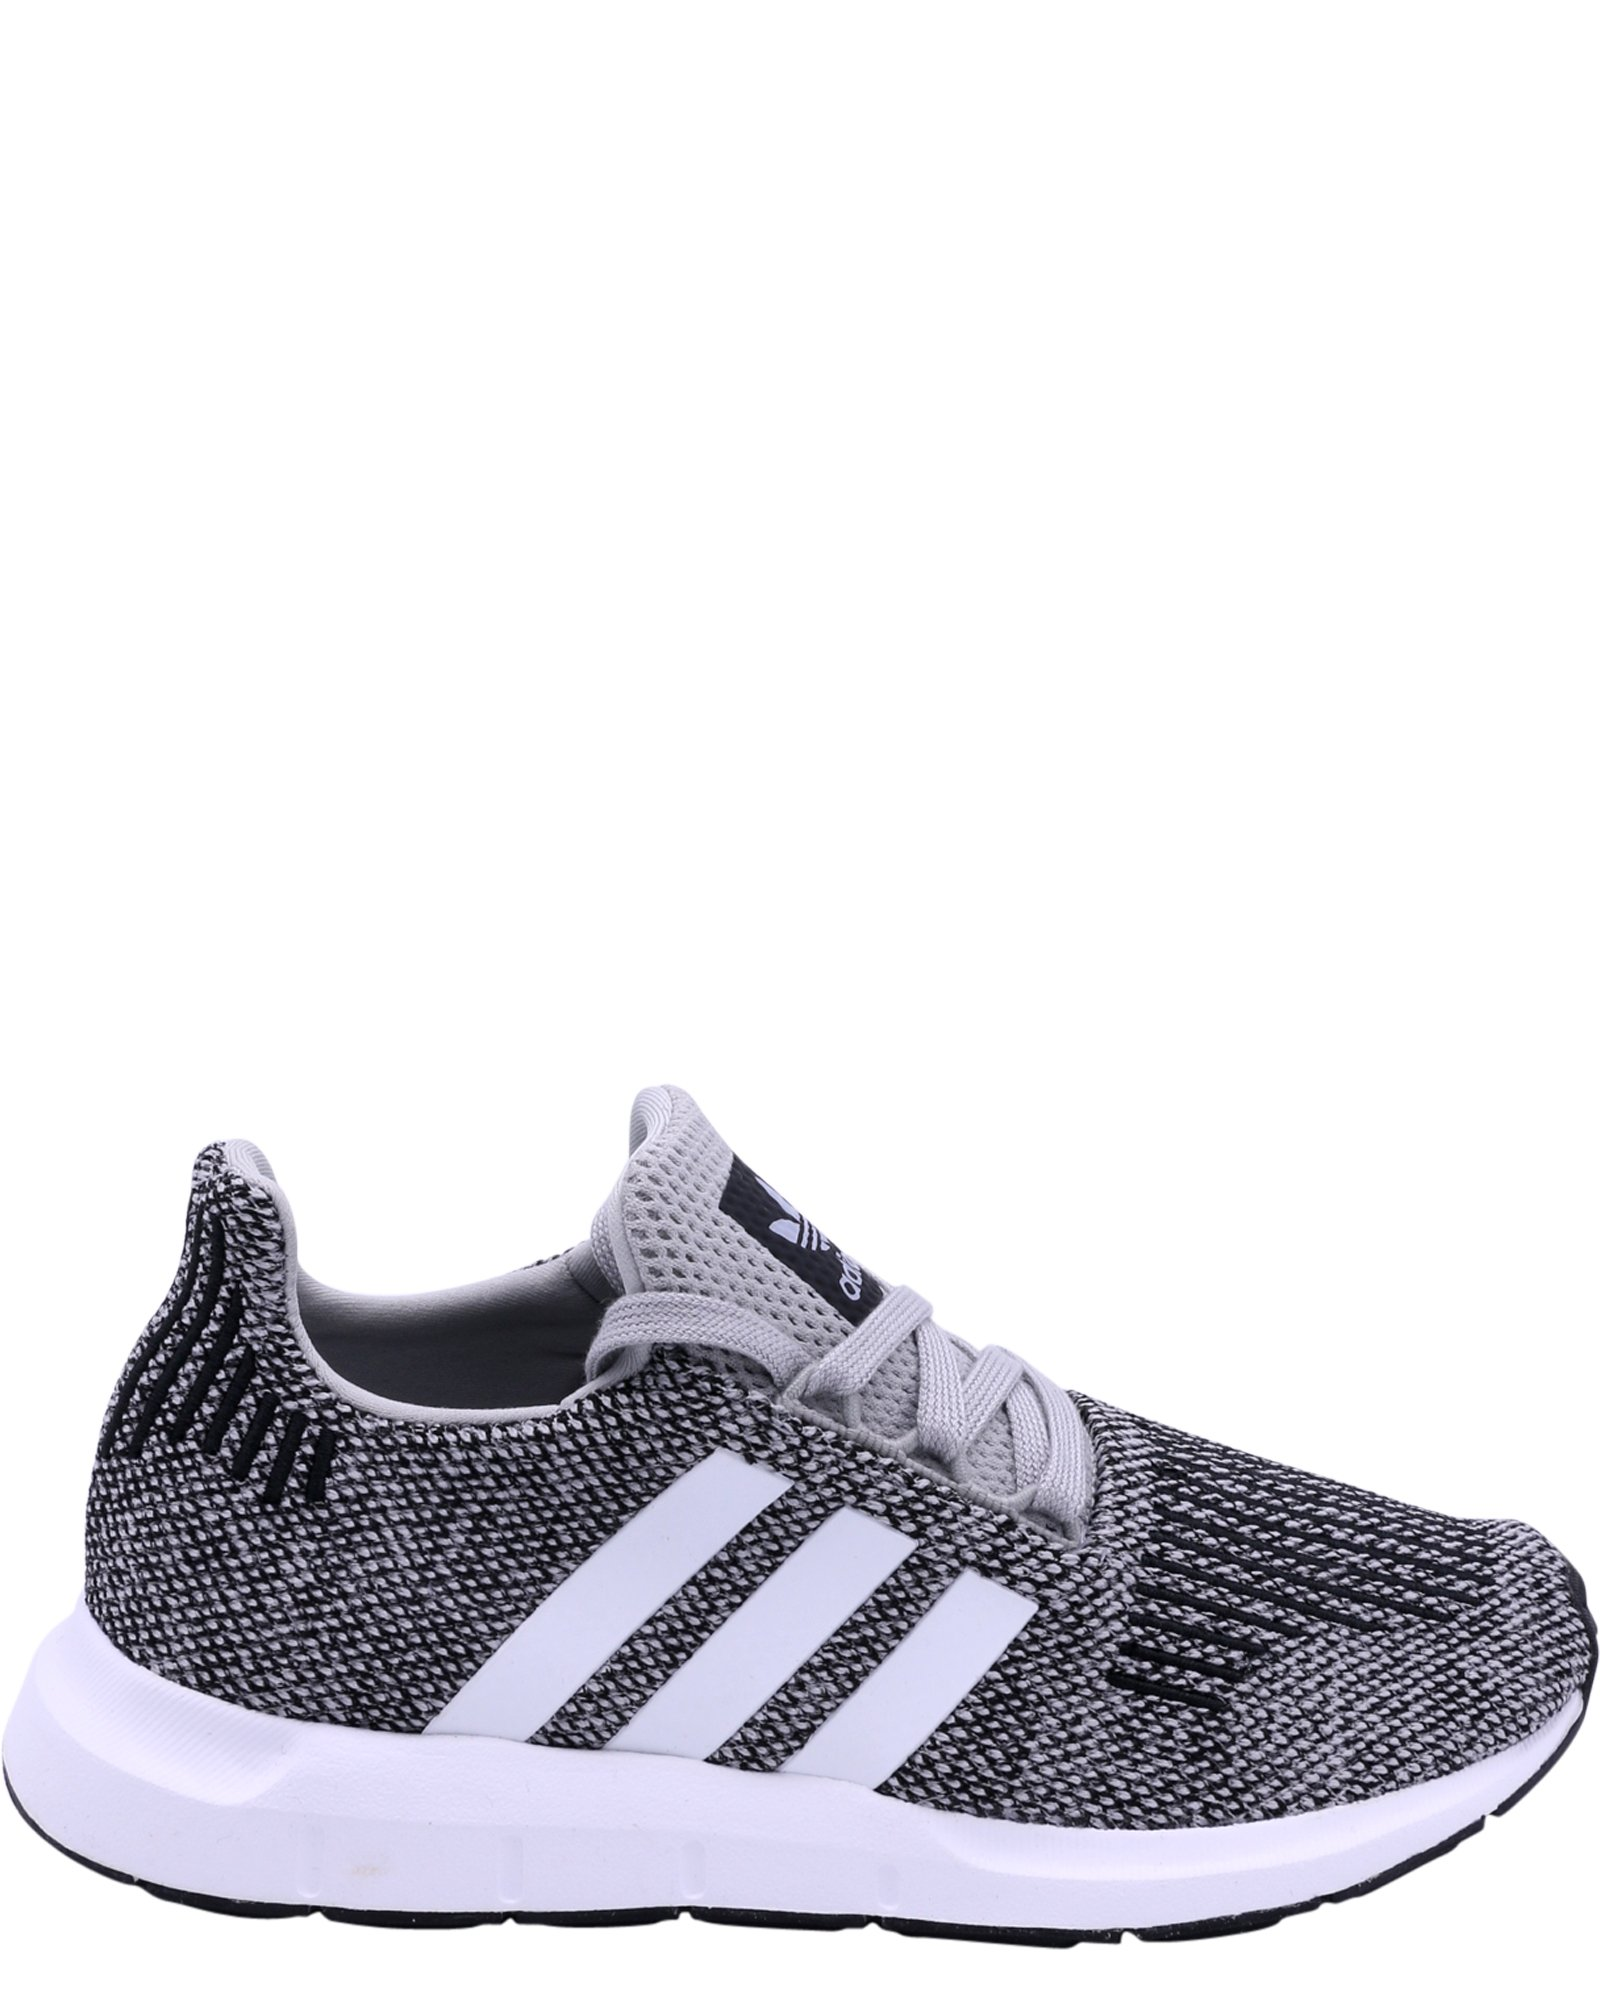 adidas Boys' Swift Run J, Grey Two/White/White, 6 M US Big Kid by adidas